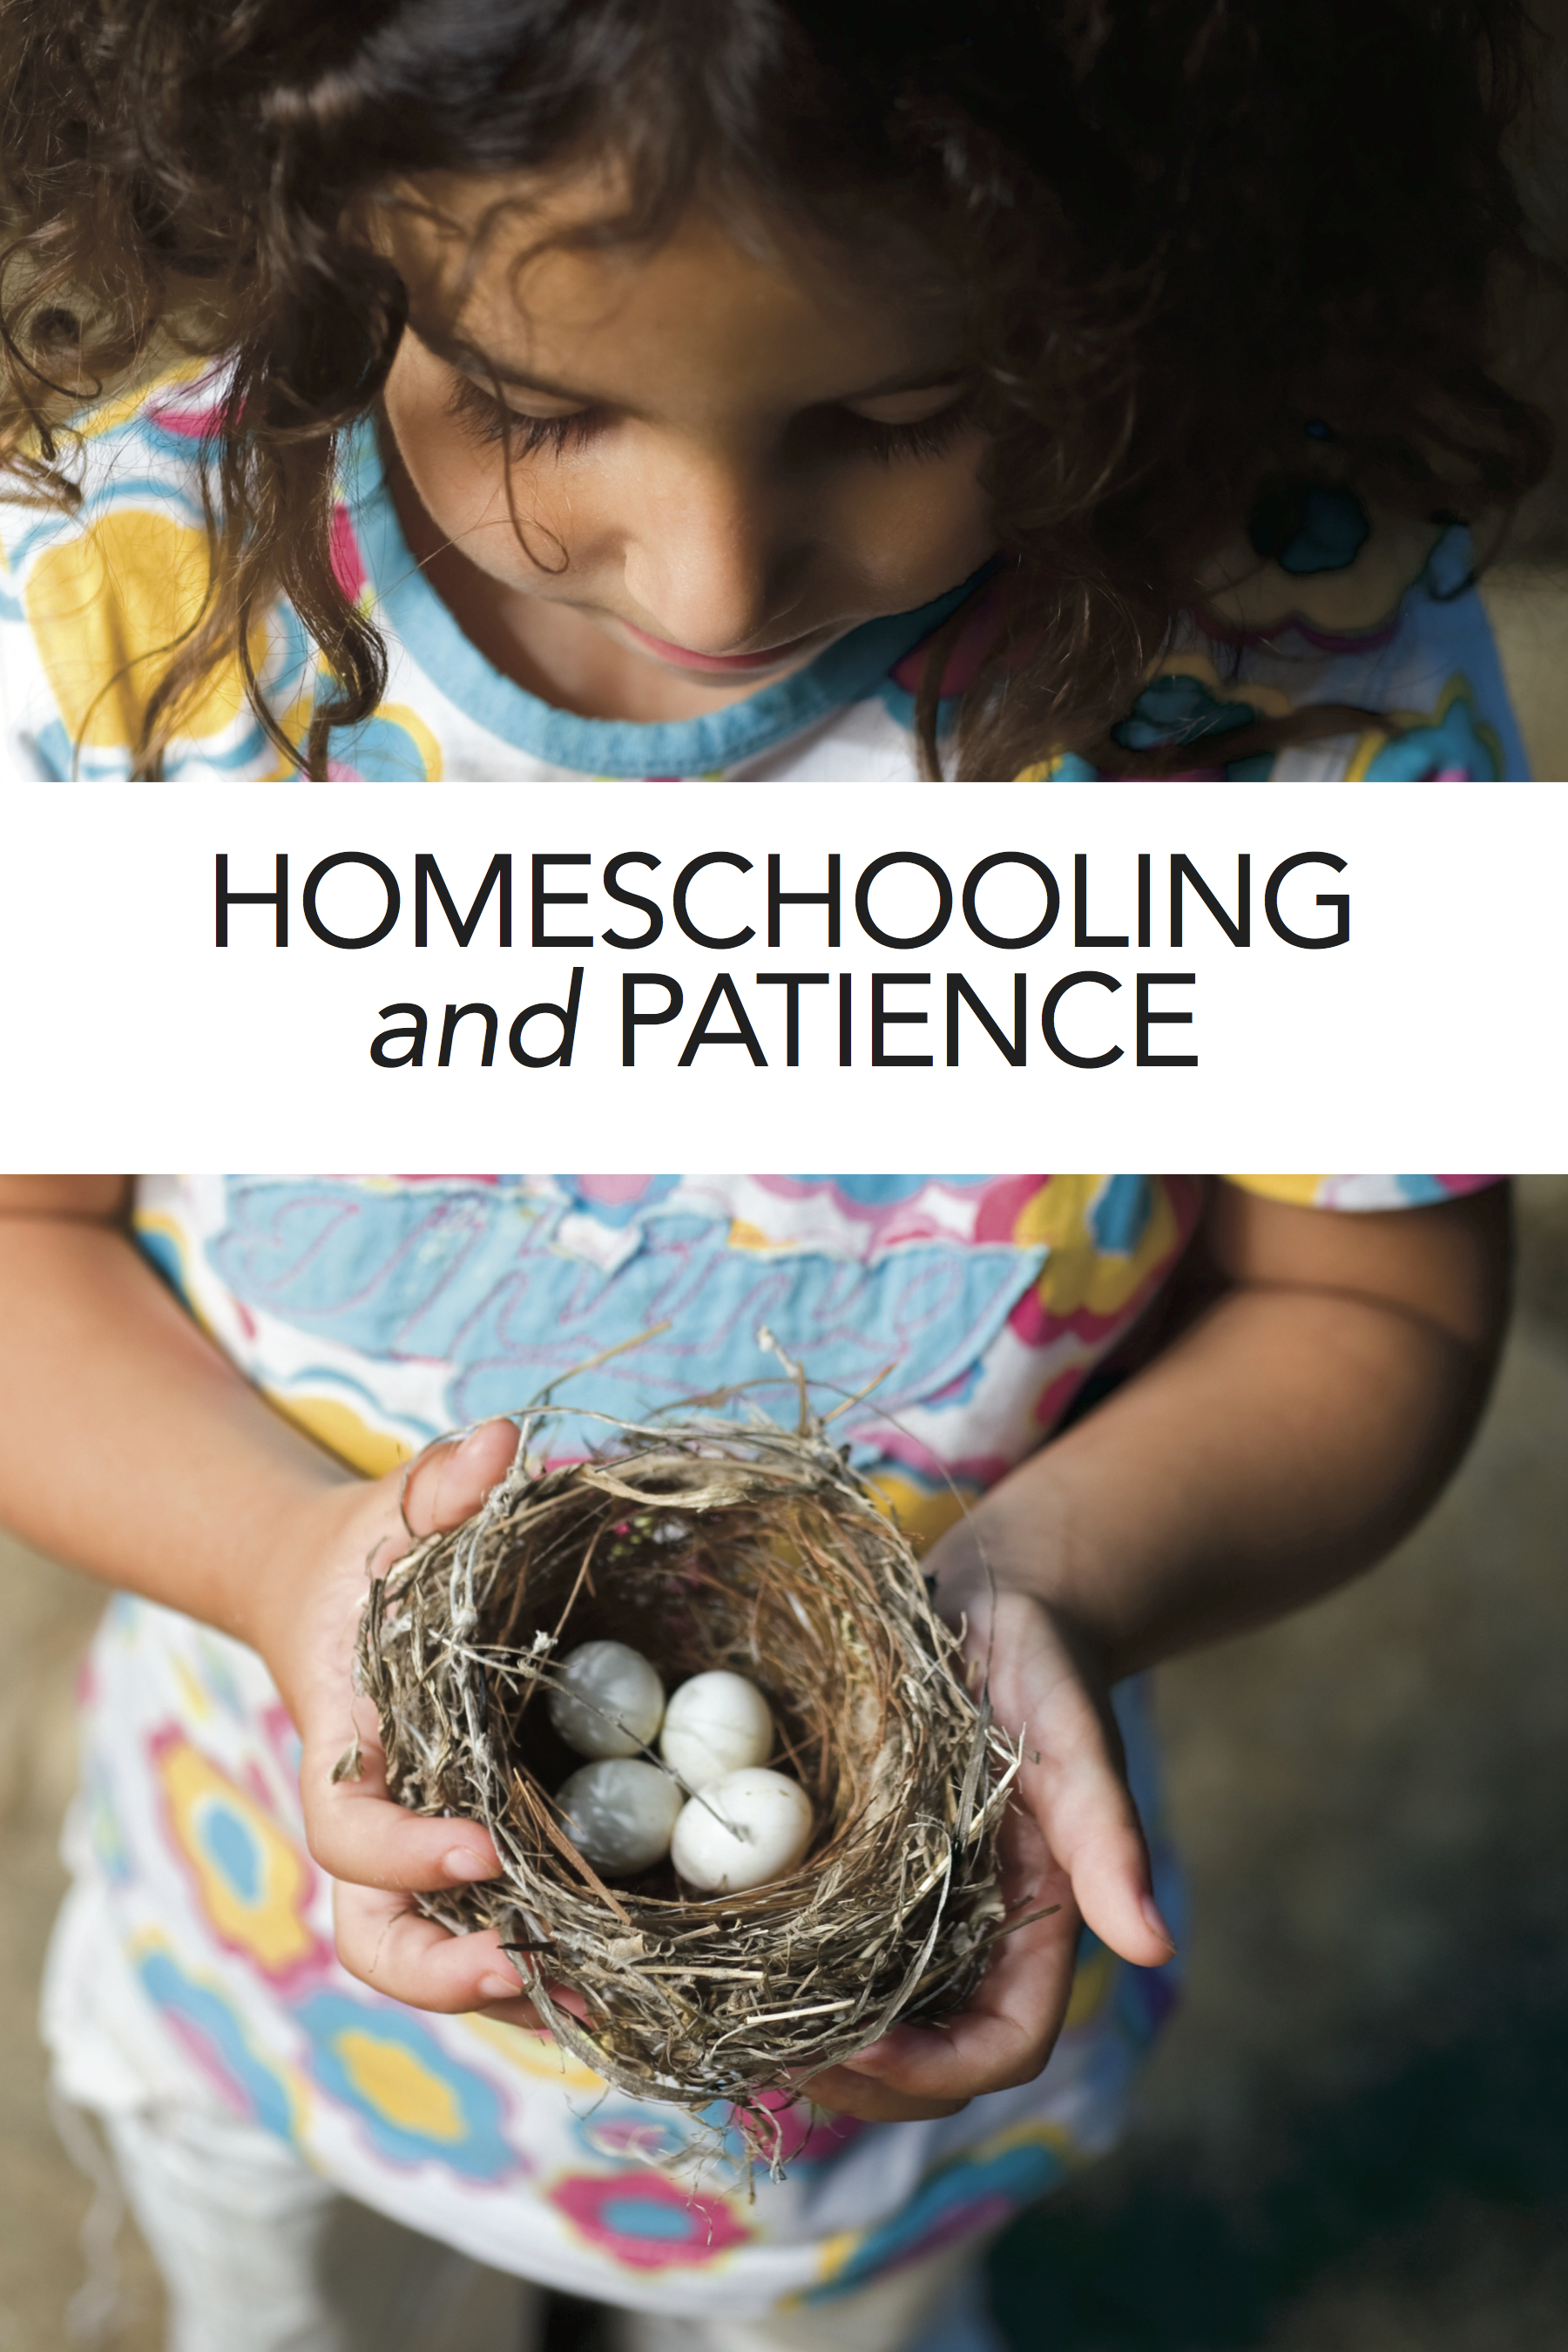 On Homeschooling and Patience